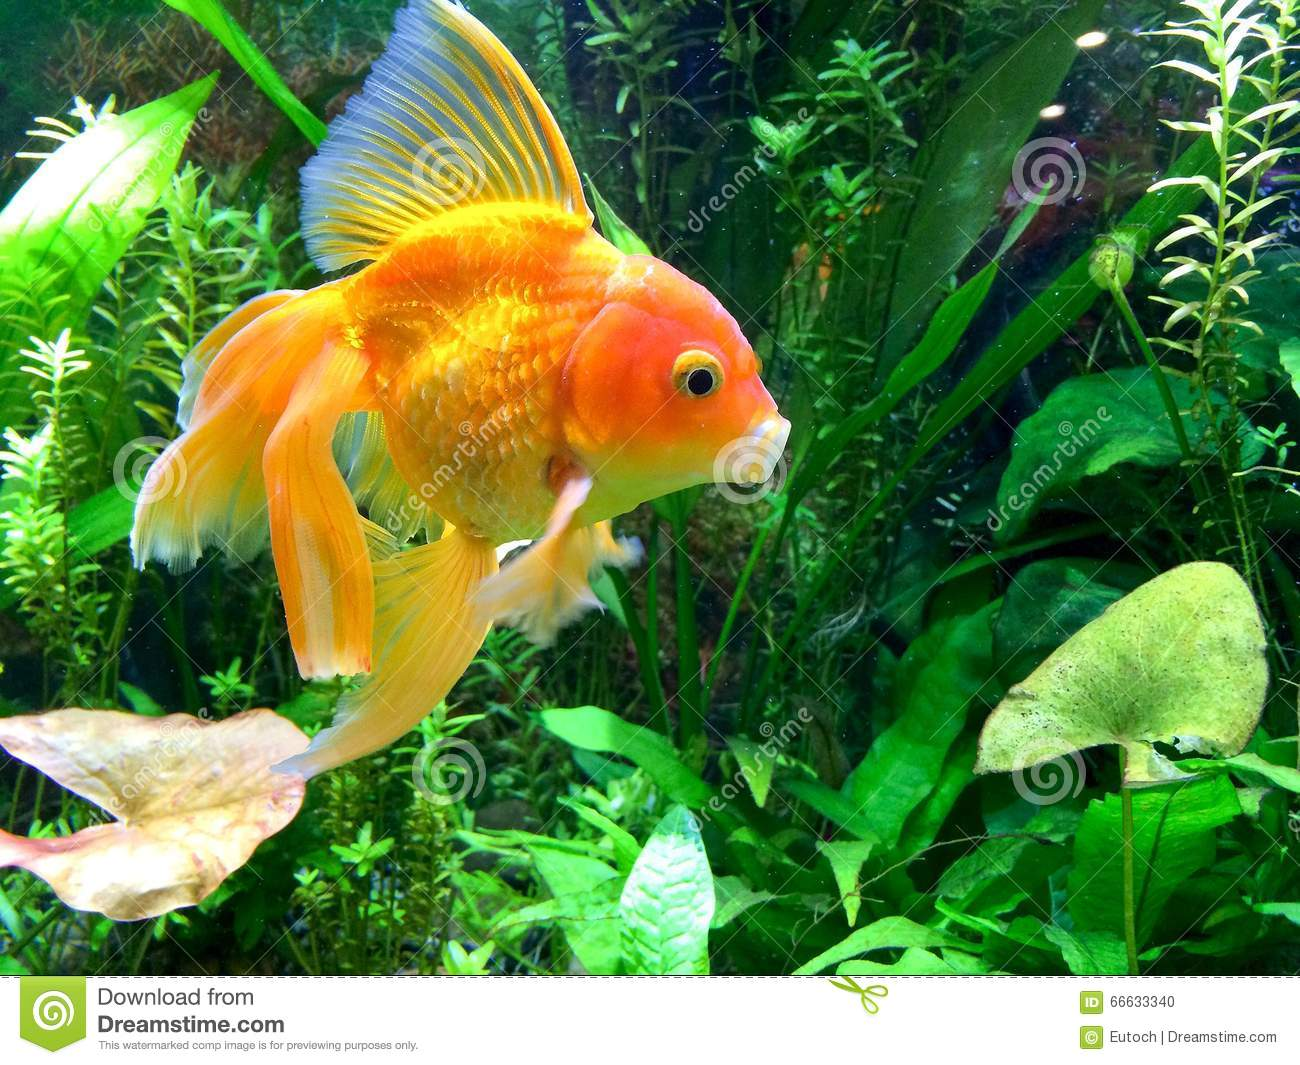 Aquarium g hnende goldfische stockfoto bild 66633340 for Goldfische im aquarium